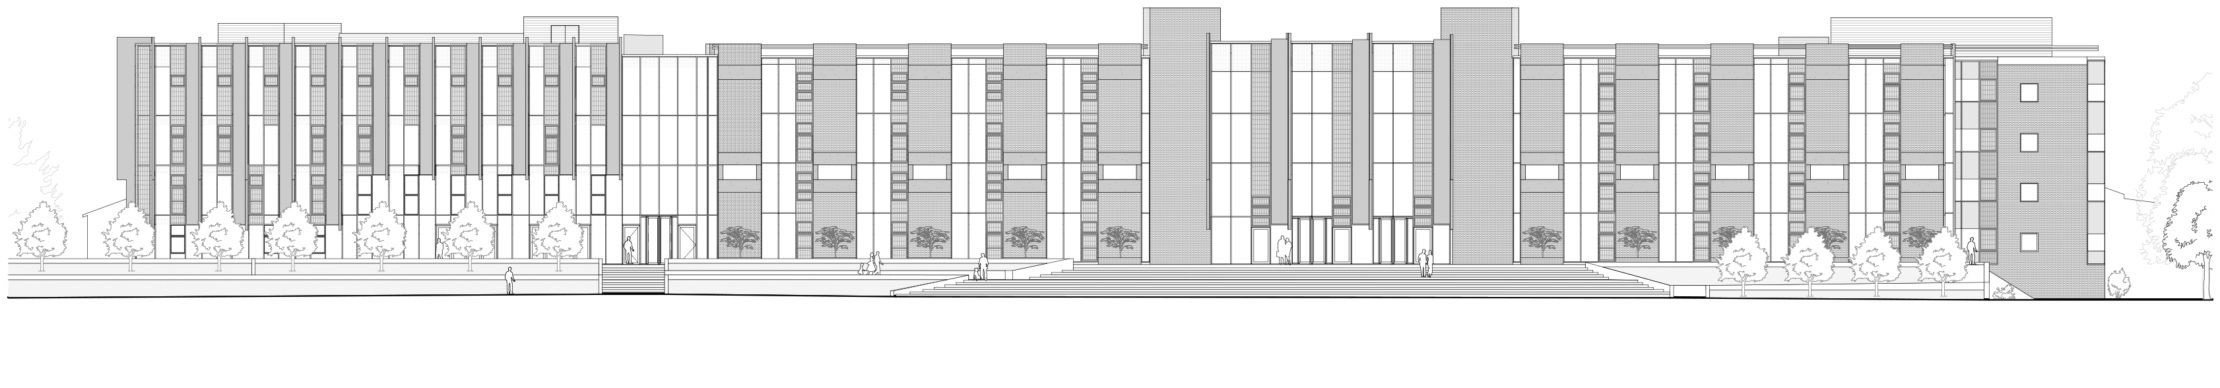 500-P-008 South Elevation _ Layout